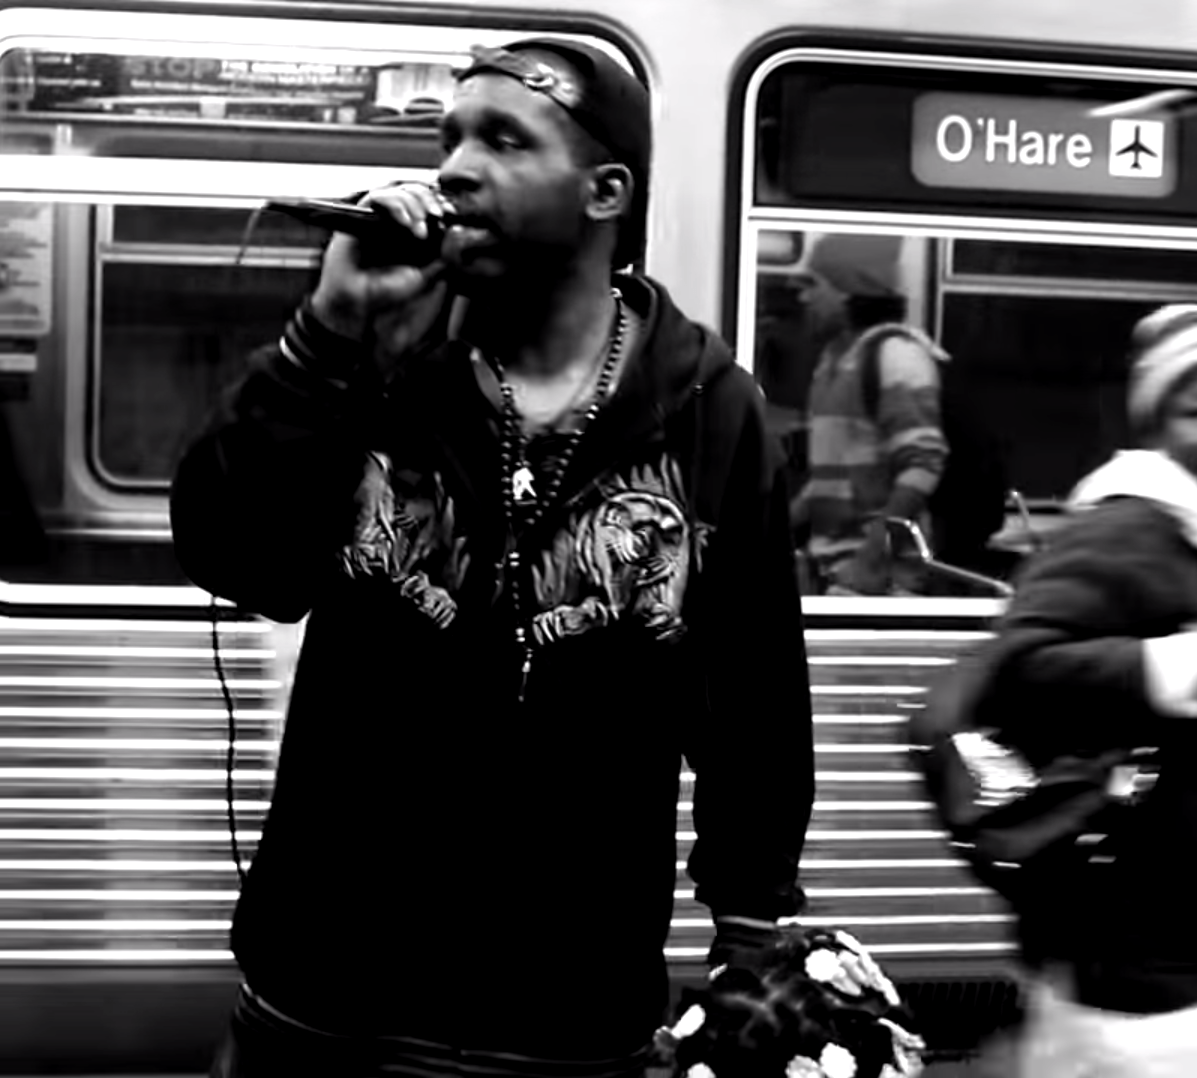 Joseph 'Solow Redline' performing on the Chicago Subway (Picture: Solow Redline / hiphopkiosk)